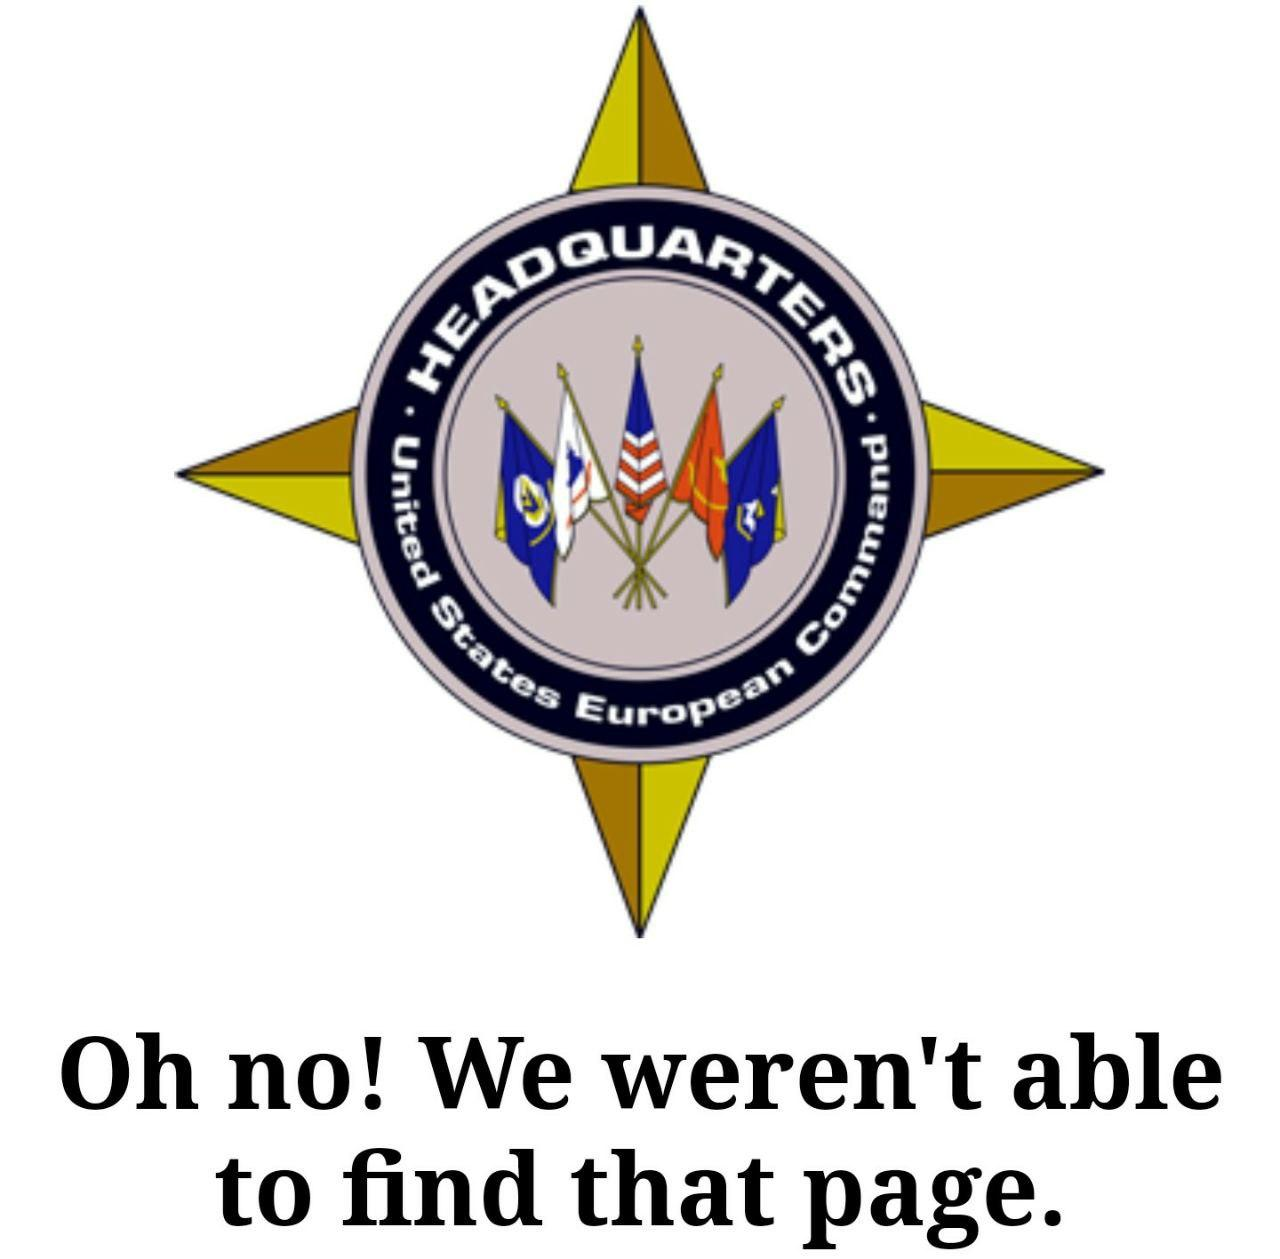 U.S. EUCOM COVID-19 Update Page Mysteriously Vanished From Website